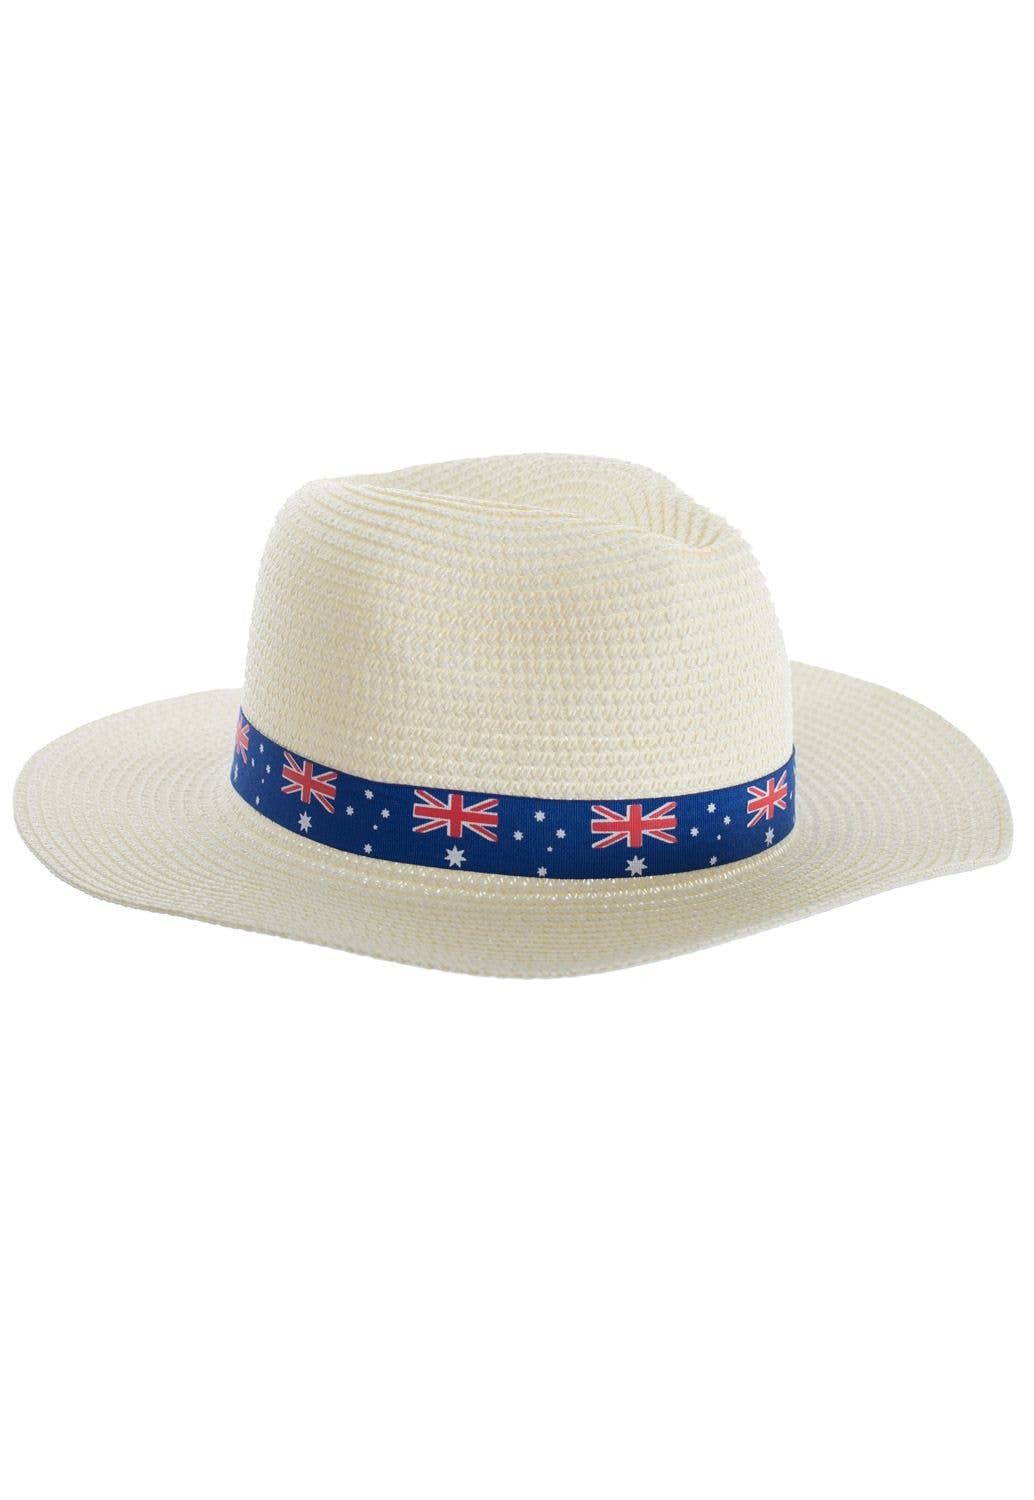 445c6af3cc0 Cream Coloured Wide Brim Australia Flag Sun Hat